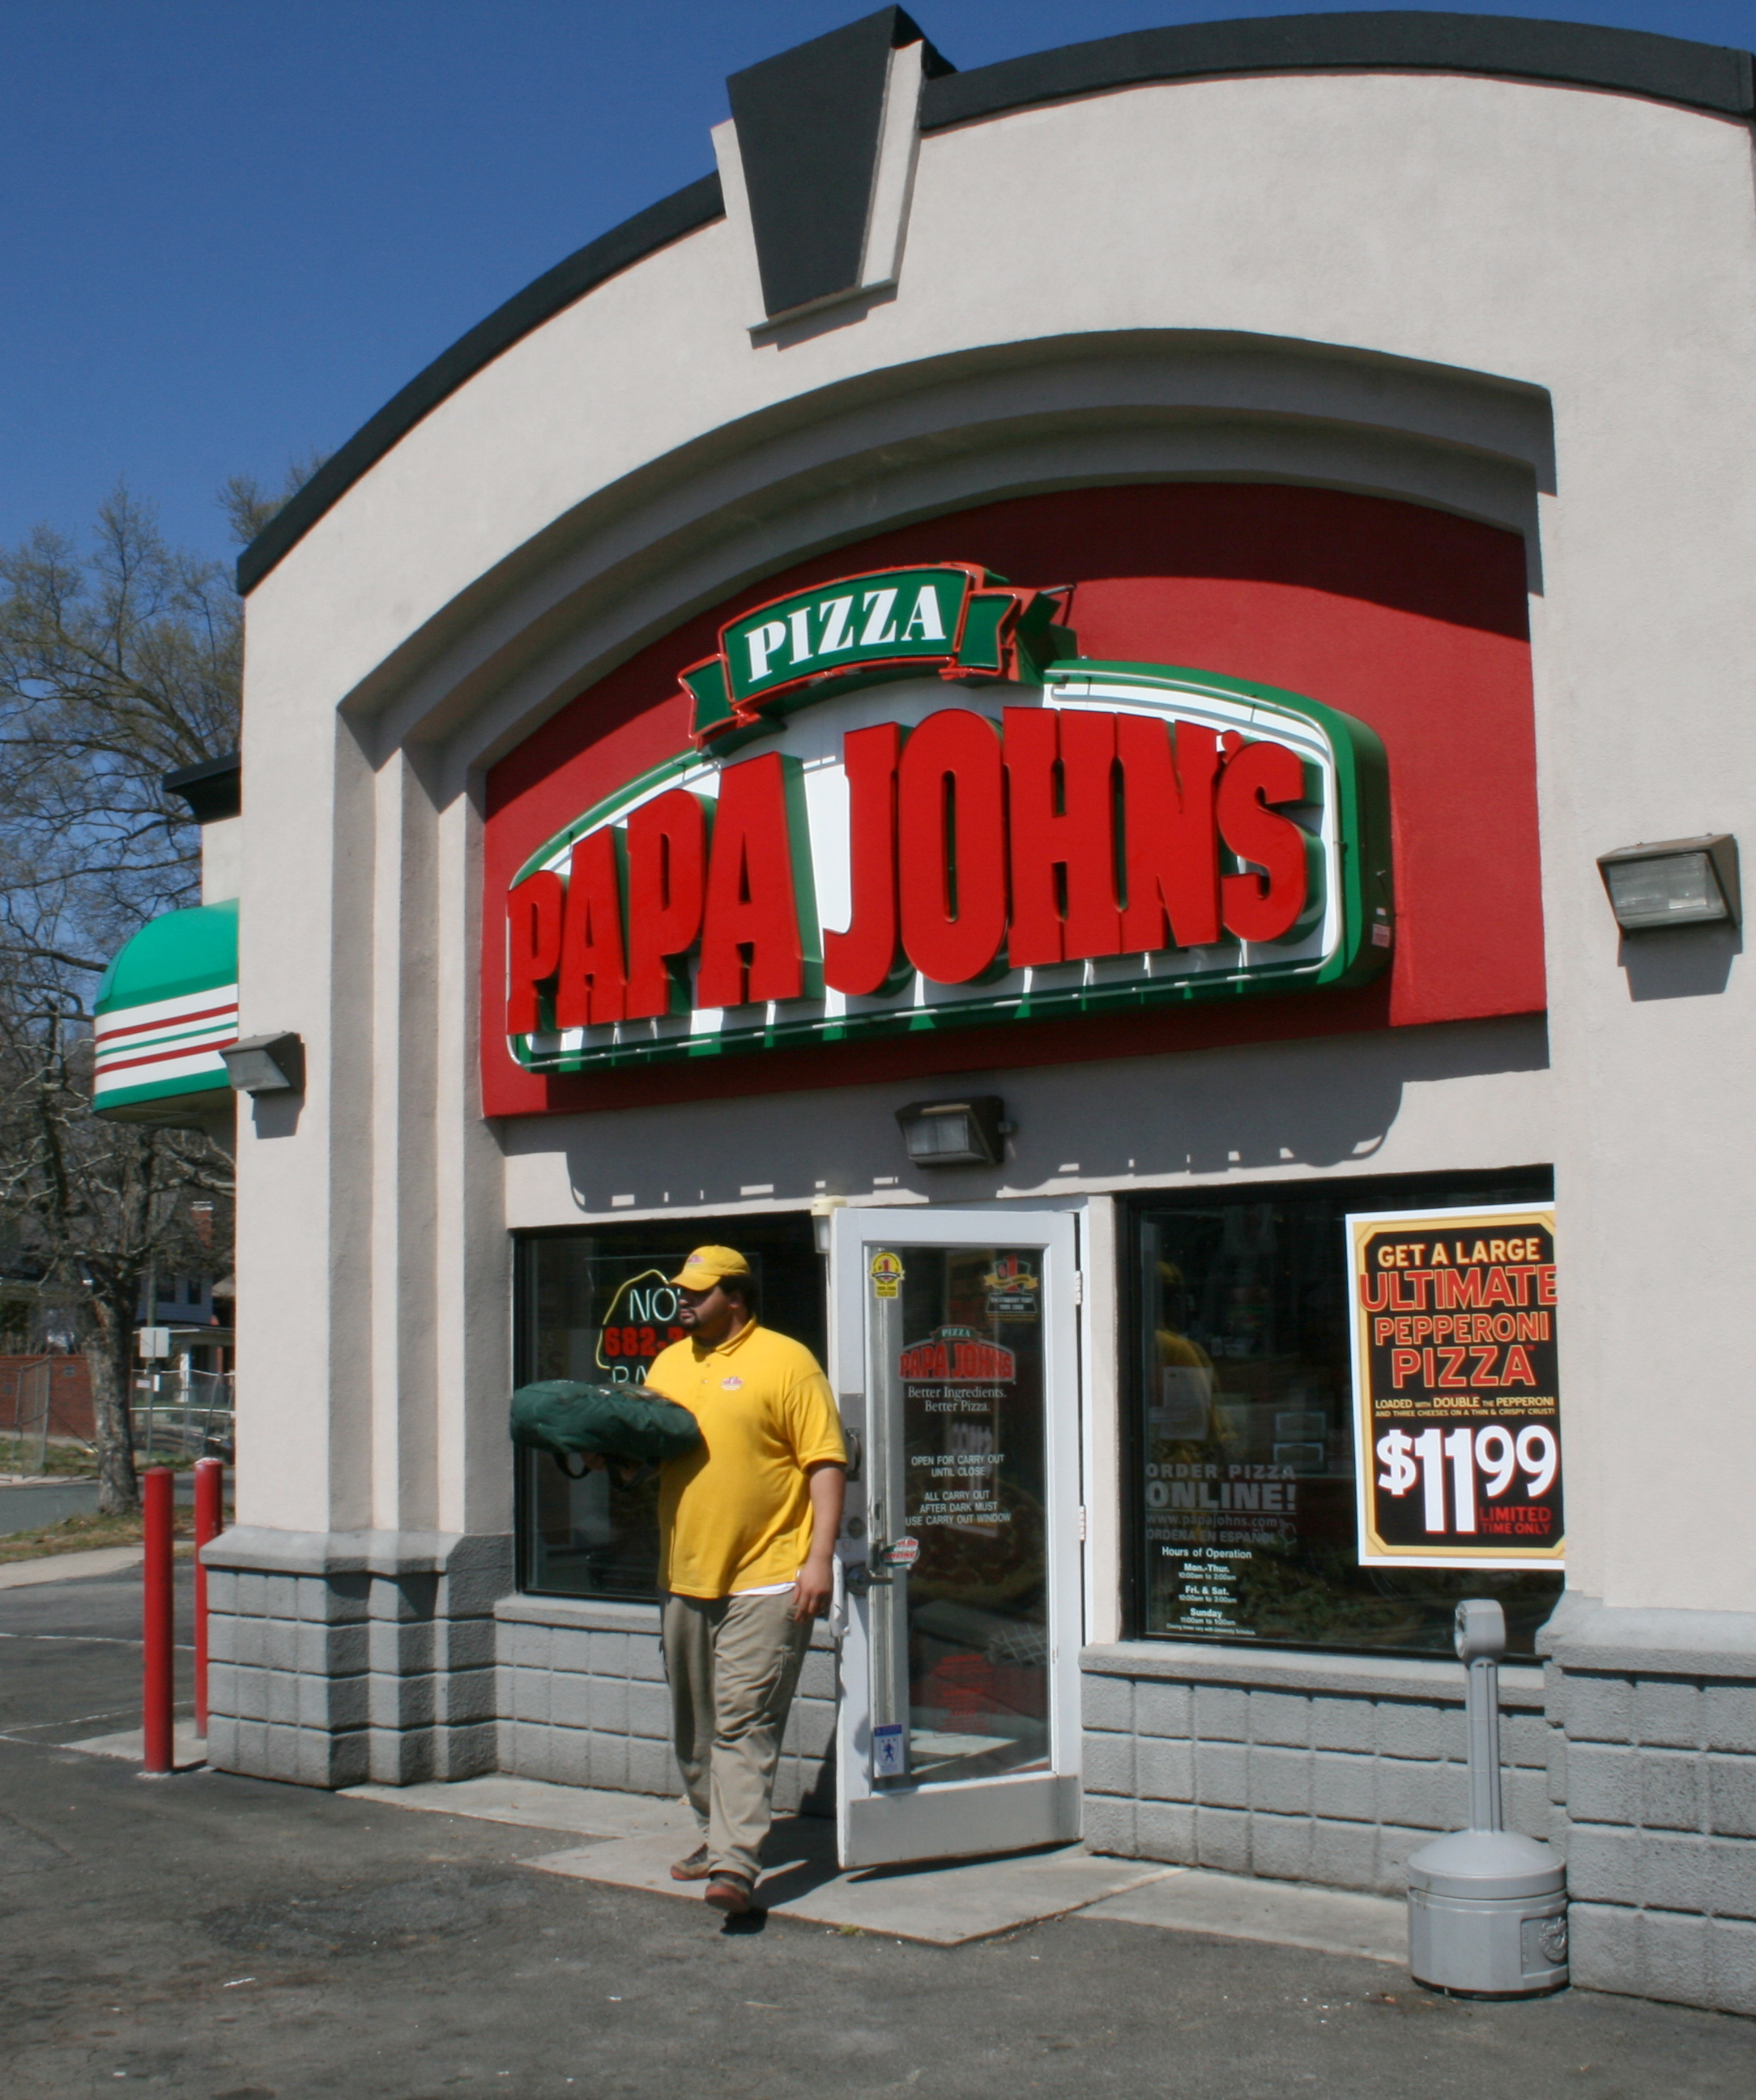 2009 03 20 Papa John%27s Pizza out for delivery in Durham Papa Johns Pizza sued for $250 million over SMS spam